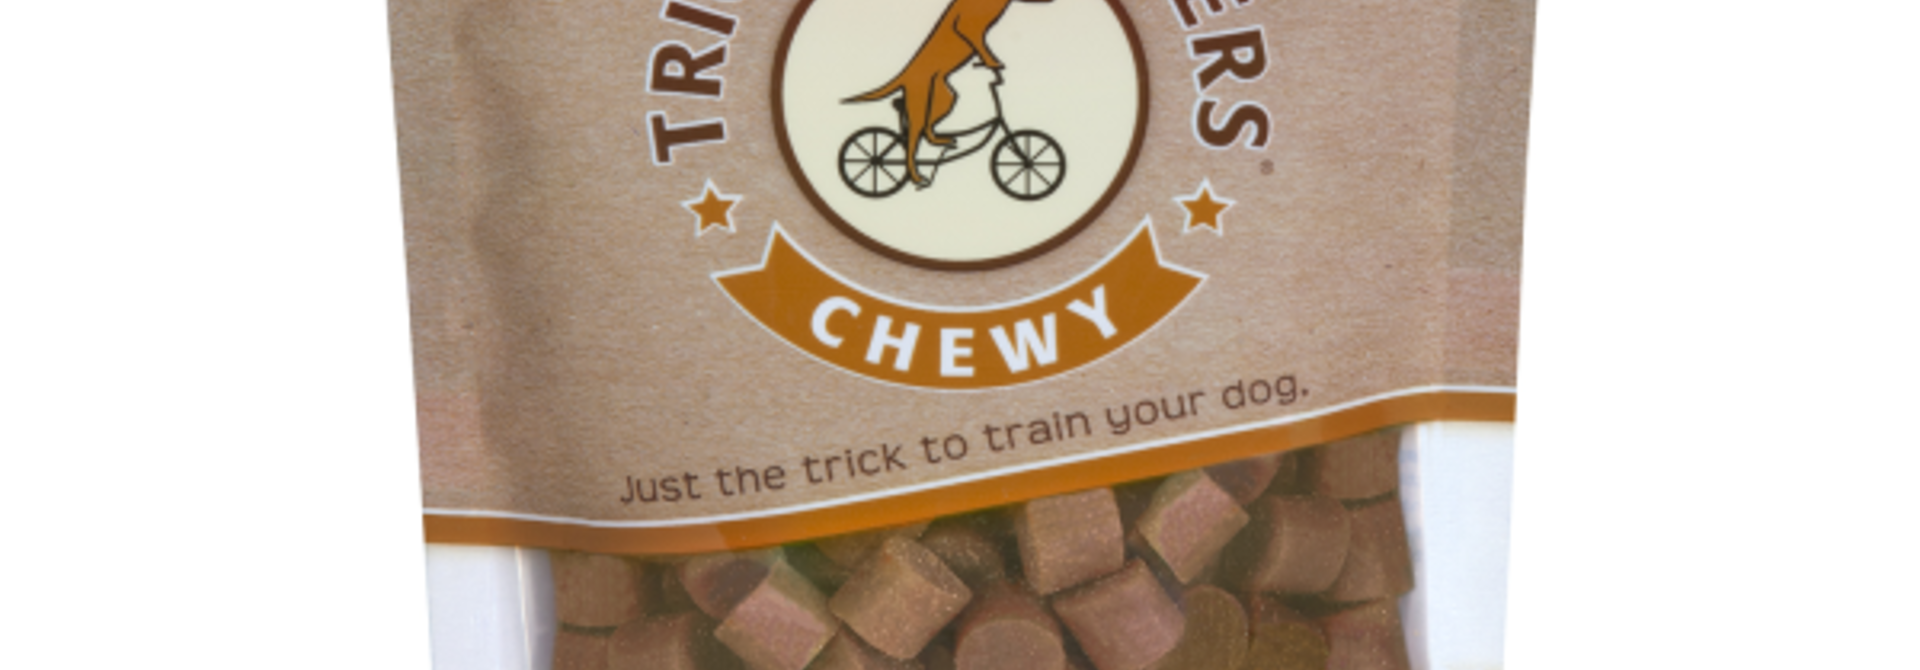 Chewy - Tricky Trainers - Cheddar